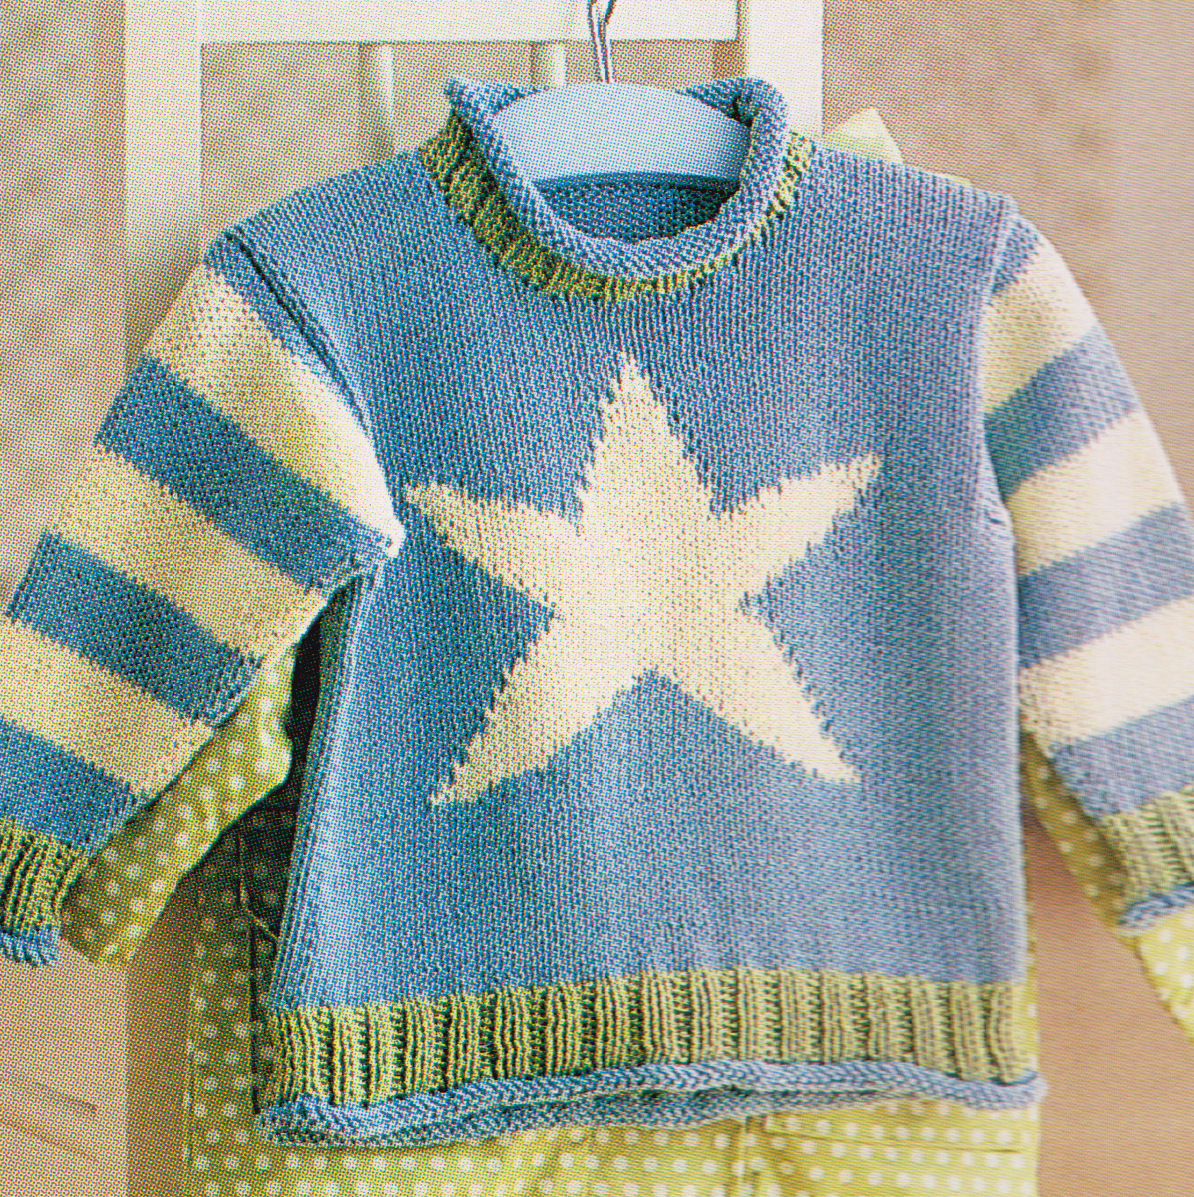 Baby Sweater Patterns Beautiful Starfish Childrens Baby Summer Sweater 6mths 4 Yrs Of Beautiful 41 Images Baby Sweater Patterns